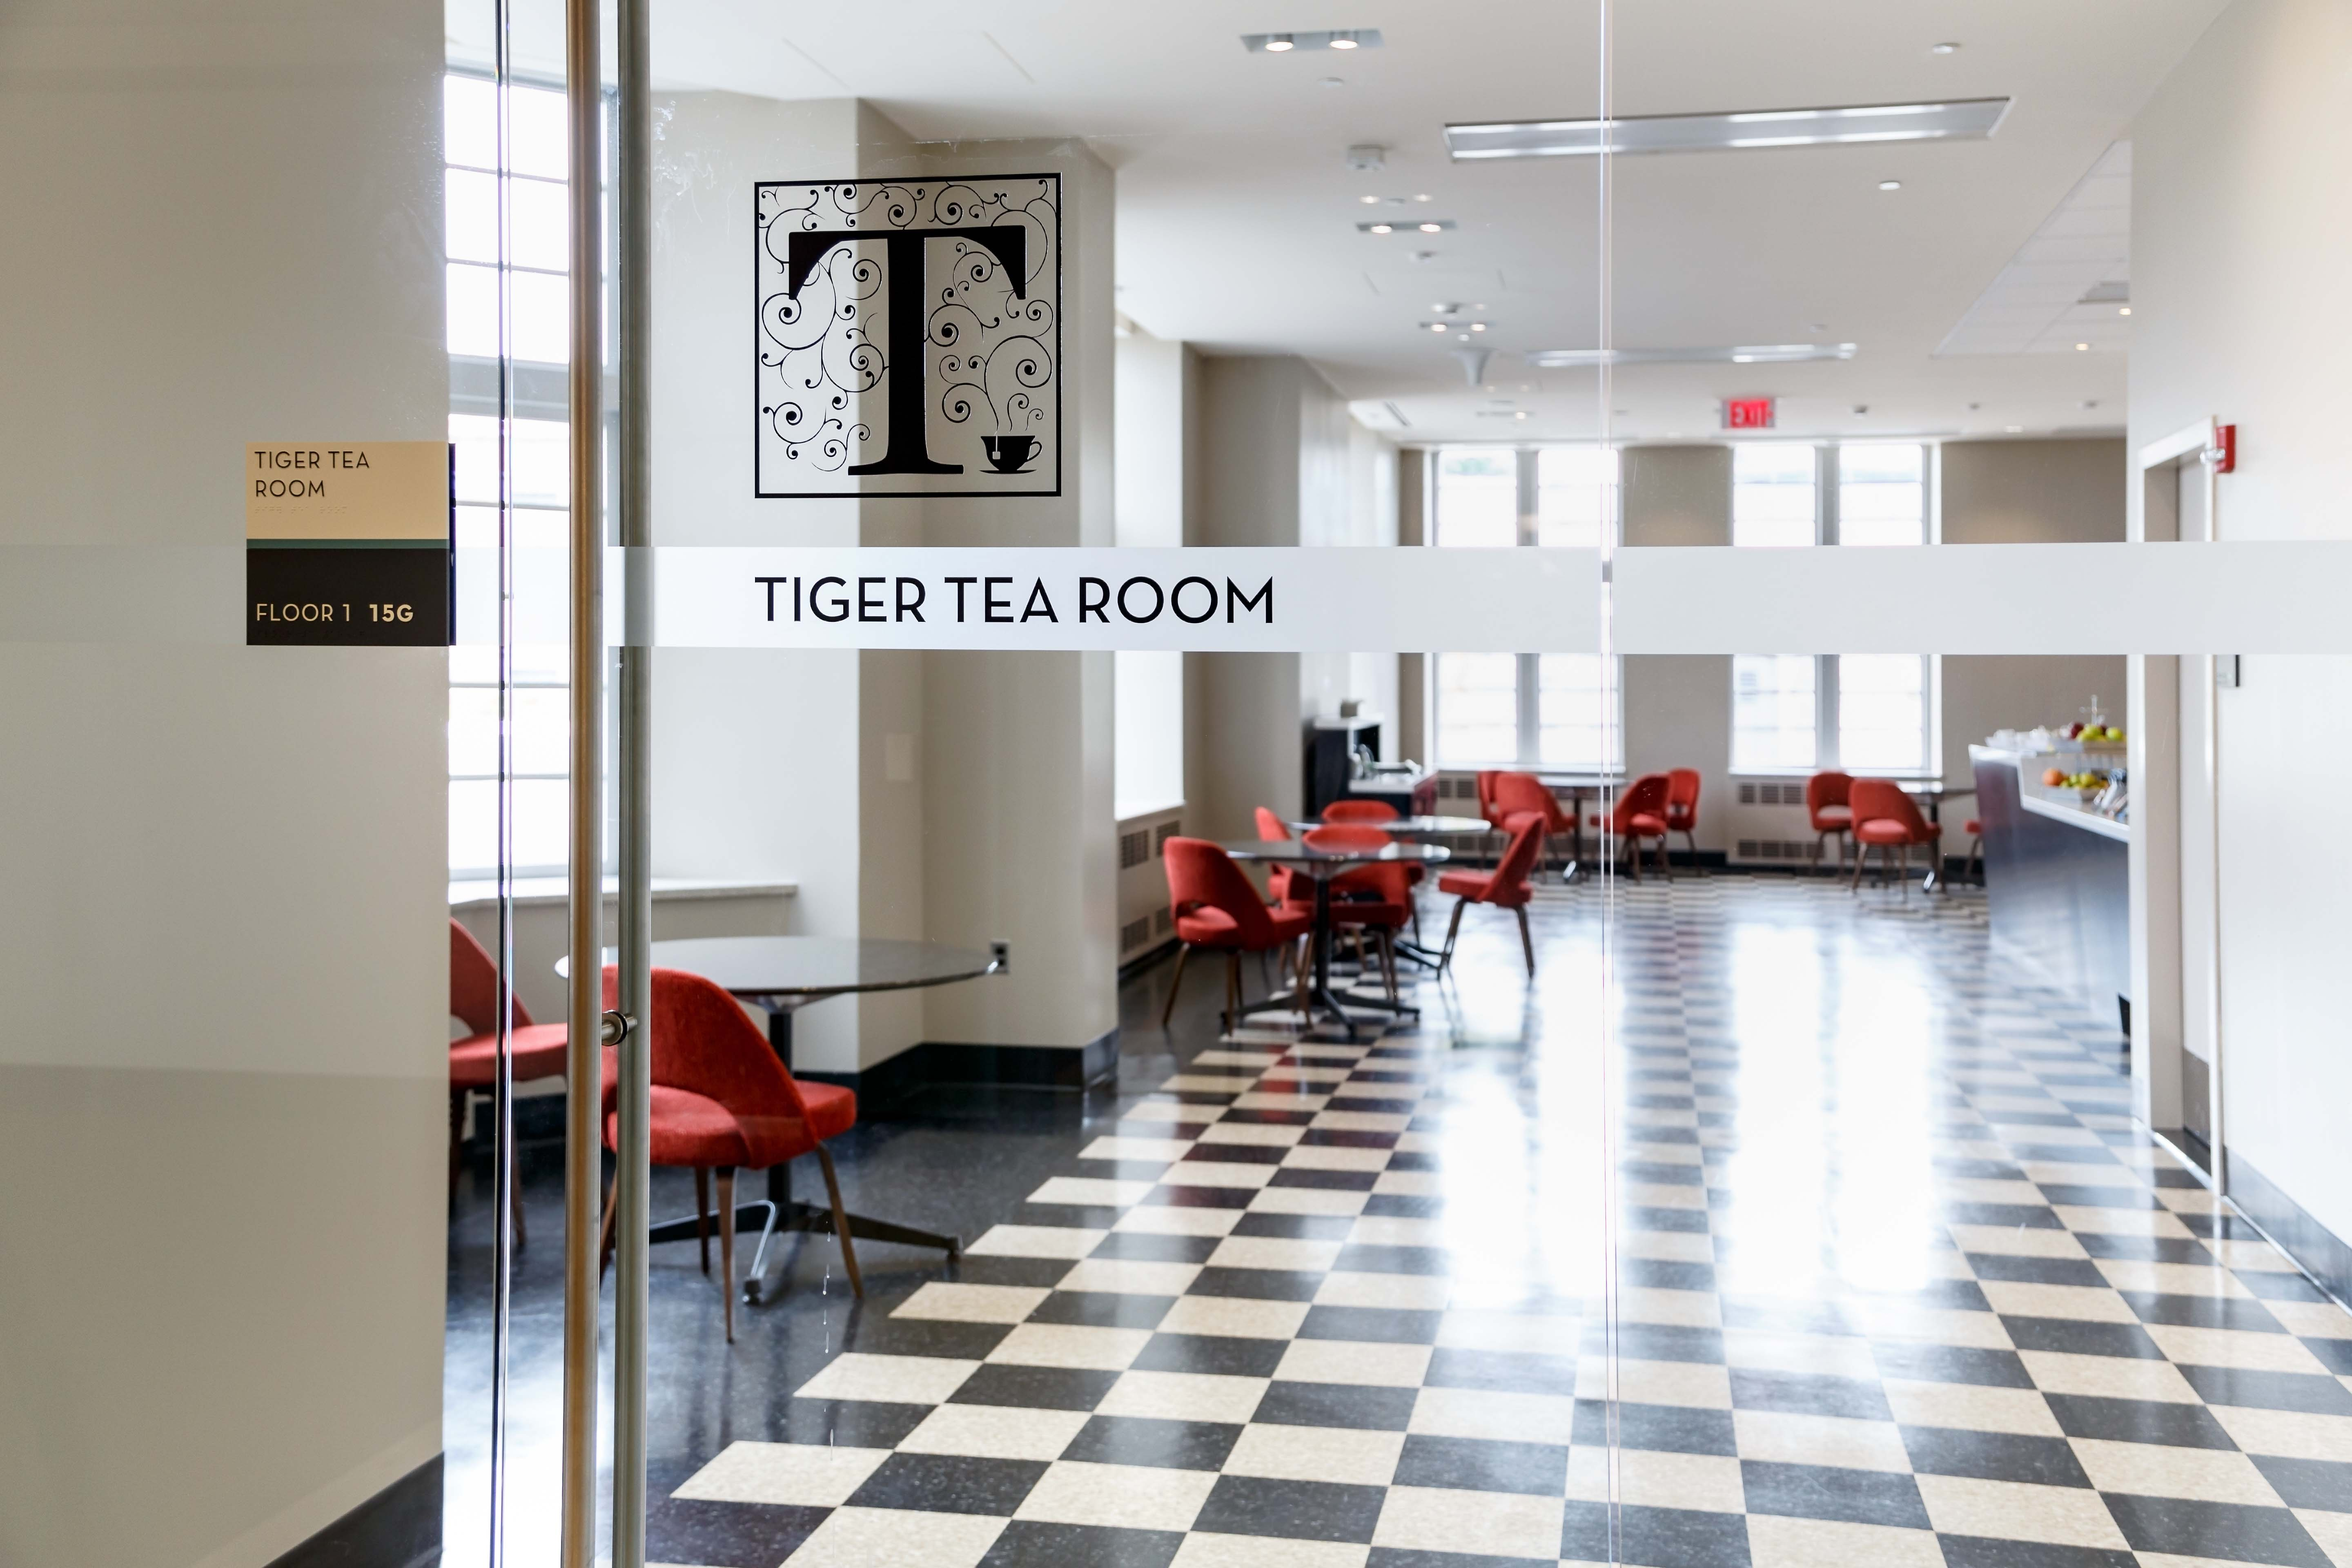 Tiger Tea Room, Firestone Library, first floor